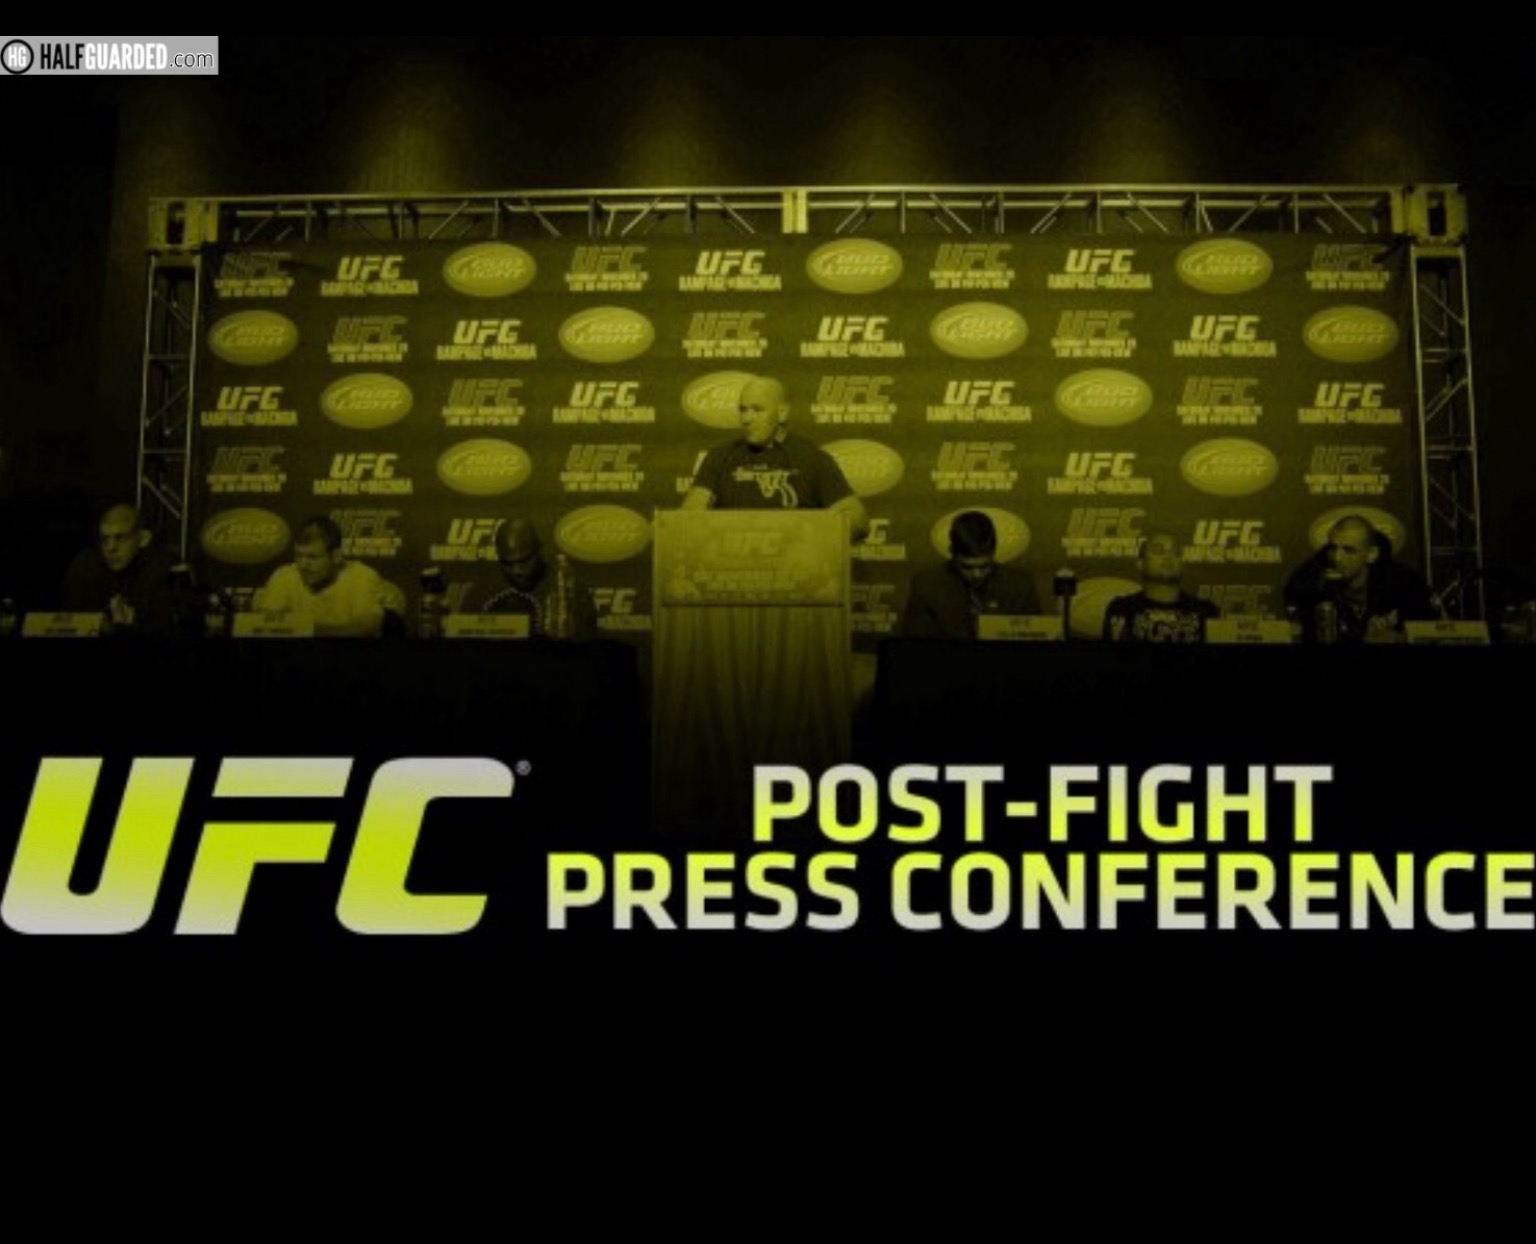 UFC press conference